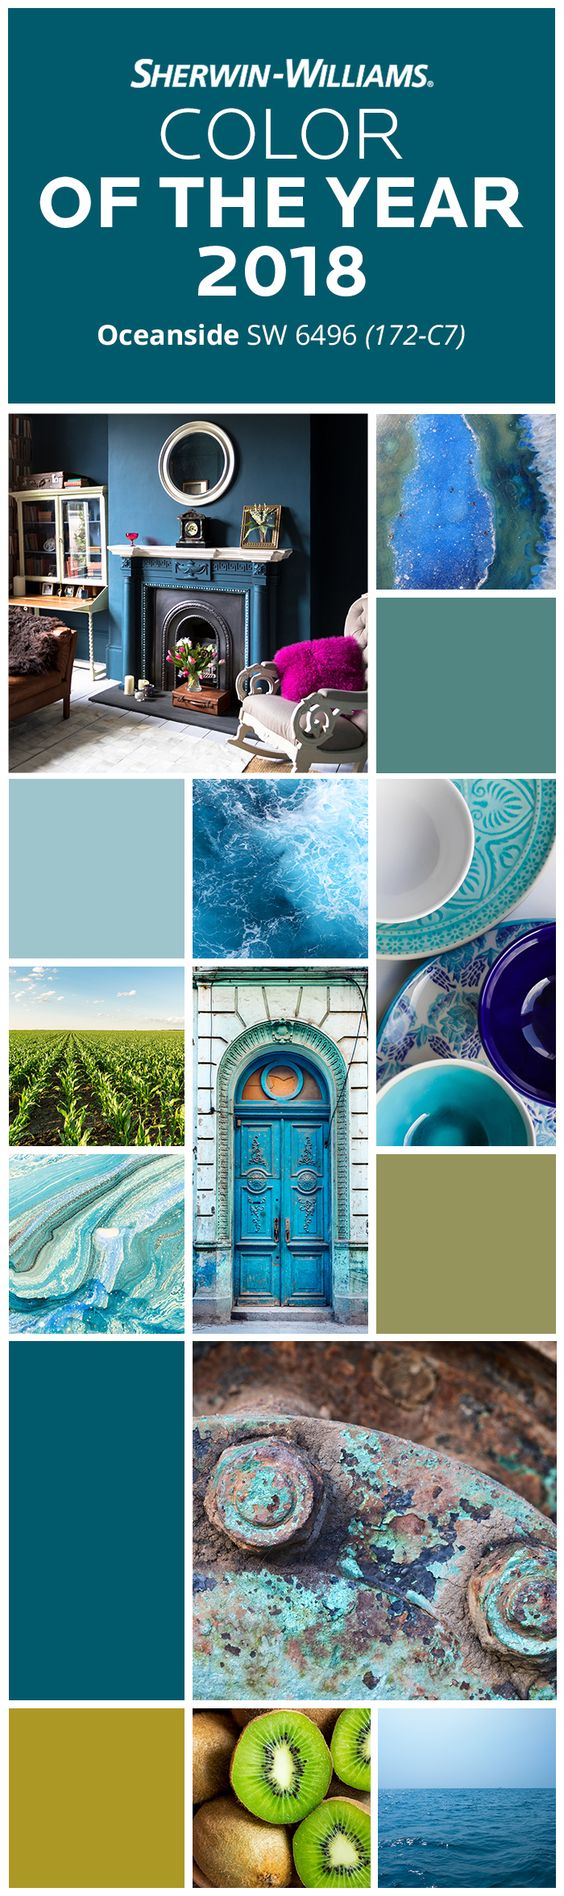 When we dream of the ocean, we dream in blue. Gentle, powerful, soothing, this hue brings calmness, peace and an undeniable desire to relax and have fun. Want that same vibe in your house? Dive into our Color of the Year 2018, Oceanside SW 6496. Then pair it with hues like Lagoon SW 6480, Agua Fria SW 9053, Tansy Green SW 6424 and High Strung SW 6705 to create a colorful getaway you don't have to leave home for.